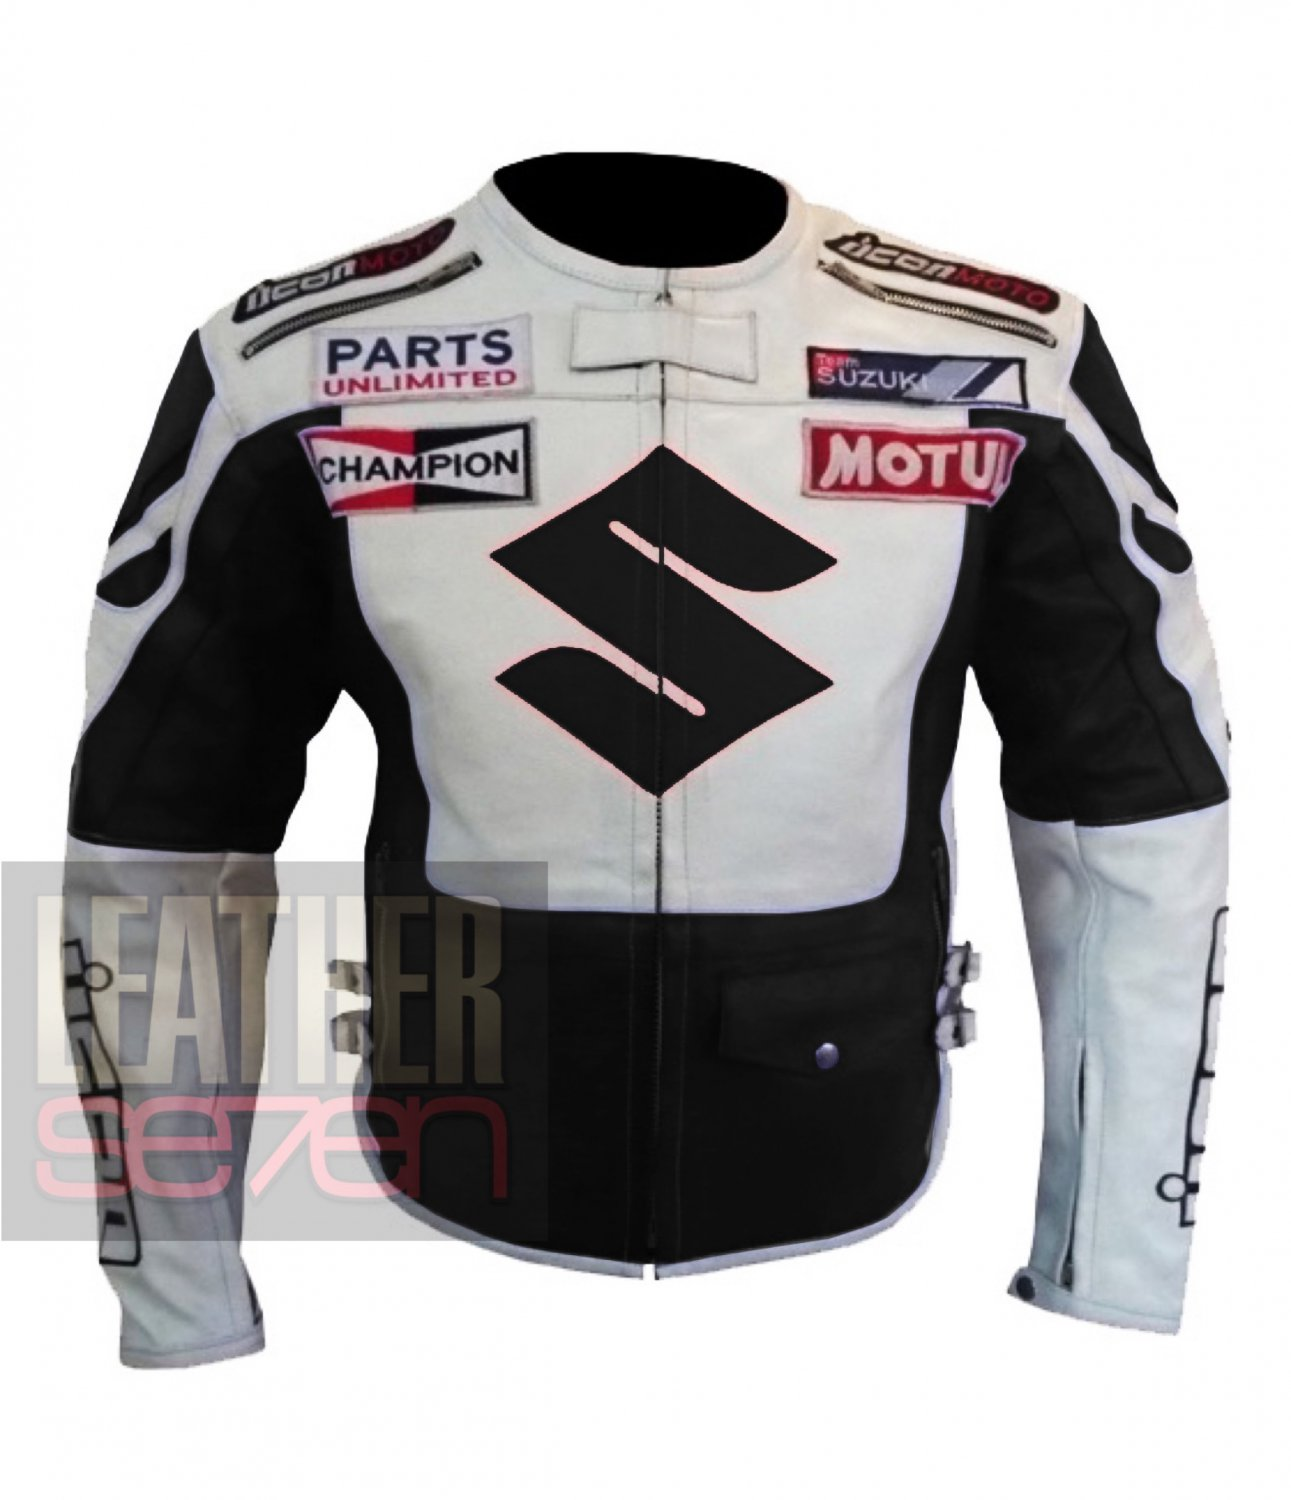 Suzuki 4269 Black 2 Pure Cowhide Leather Safety Racing Jacket For Bikers